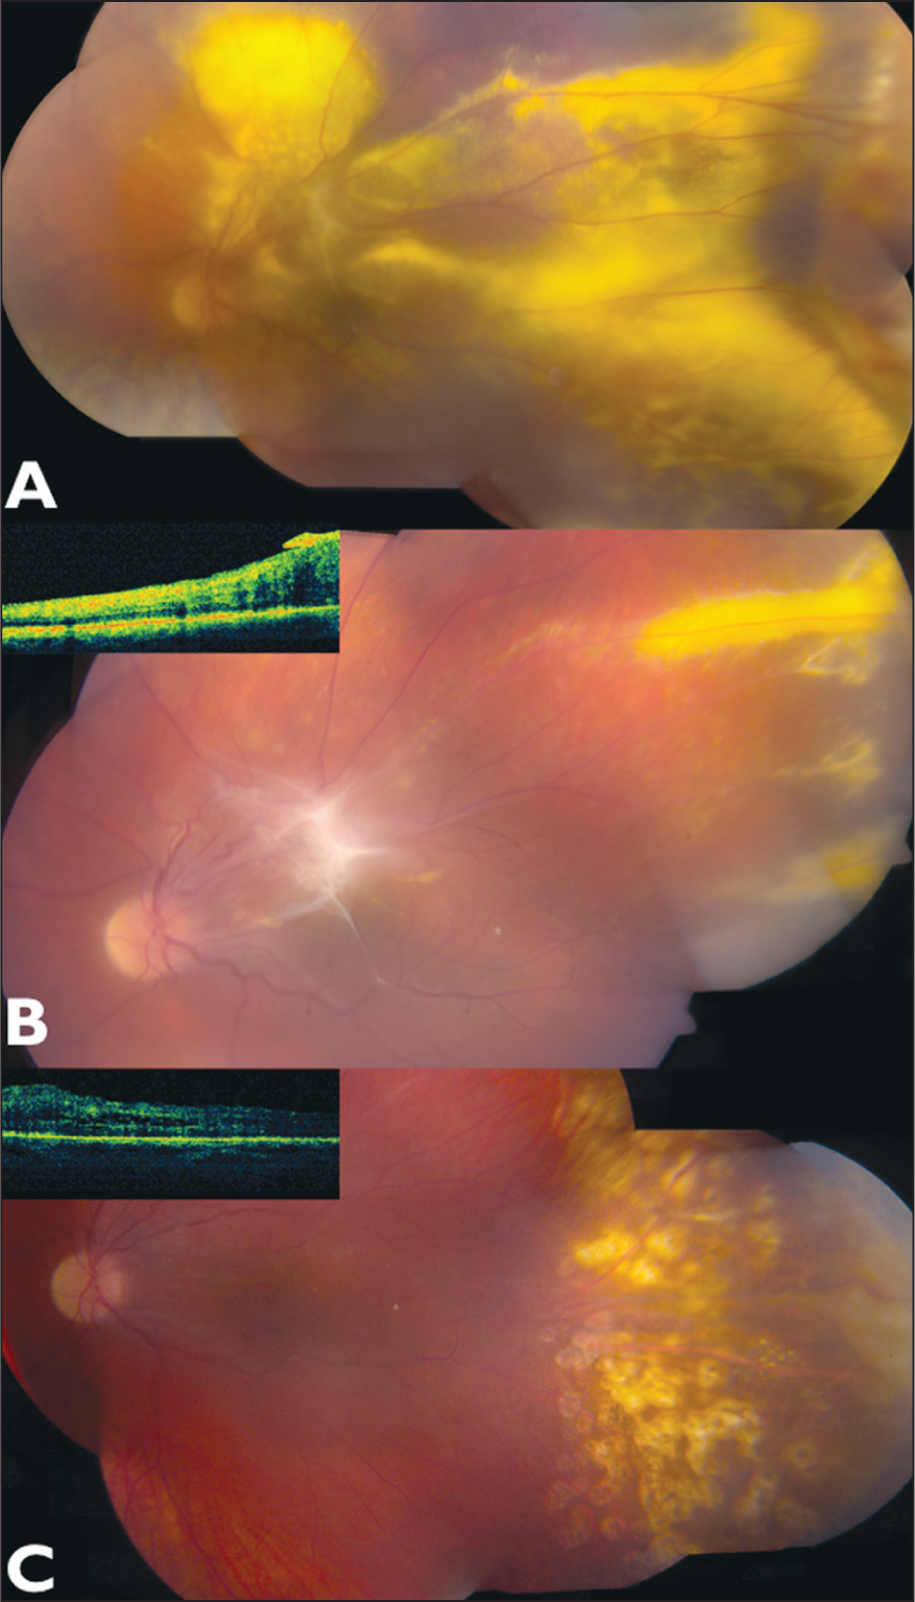 A 15-Year-Old Girl with Cicatricial Retinopathy of Prematurity in Her Left Eye Presented with Blurred Vision in Her Left Eye for 7 Months. (A) Montage Photograph of the Left Eye Showed Mild Vitritis, Vitreous Fibrosis over the Fovea, Diffuse Macular and Extramacular Exudation More in the Temporal Periphery with Total Retinal Detachment, Dragging of the Temporal Arcades, and a Vasoproliferative Tumor in the 3-o'clock Periphery. (B) Eight Months After Plaque Radiation, Tumor Regression and Significant Improvement in the Amount of Exudation and Subretinal Fluid Was Seen with Vitreomacular Traction from a Dense Epiretinal Membrane and Vitreous Fibrosis over the Macula that Needed Surgery Confirmed with Optical Coherence Tomography (inset). (C) Twenty Months After Plaque Radiation, There Was Complete Tumor Regression and Resolution of Subretinal Fluid and Exudation (inset).